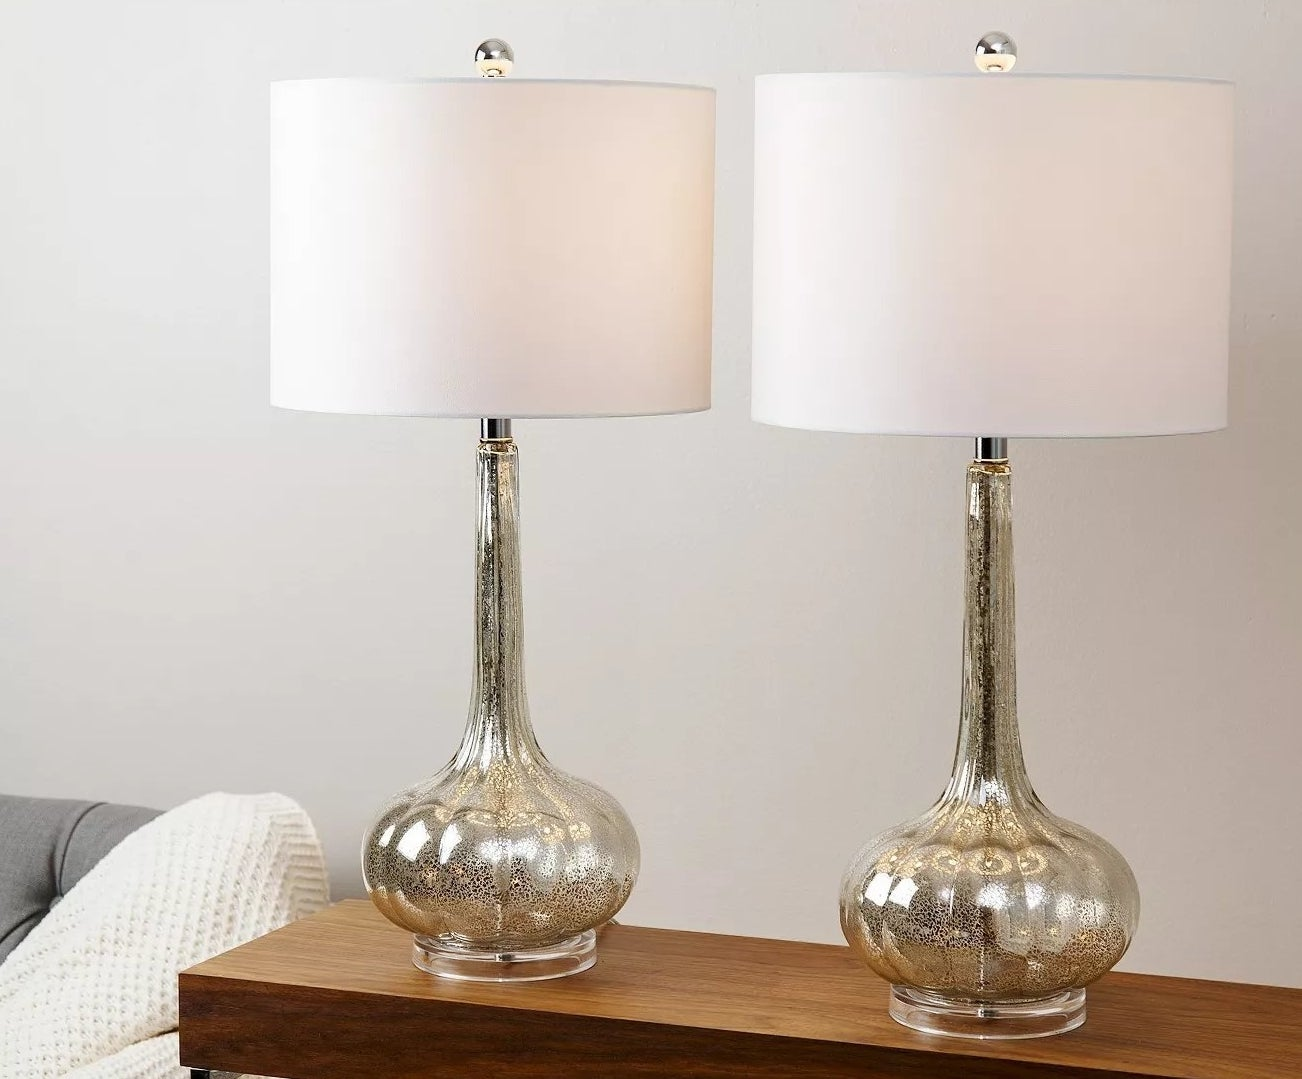 The pair of lamps with mercury glass bases and linen shades